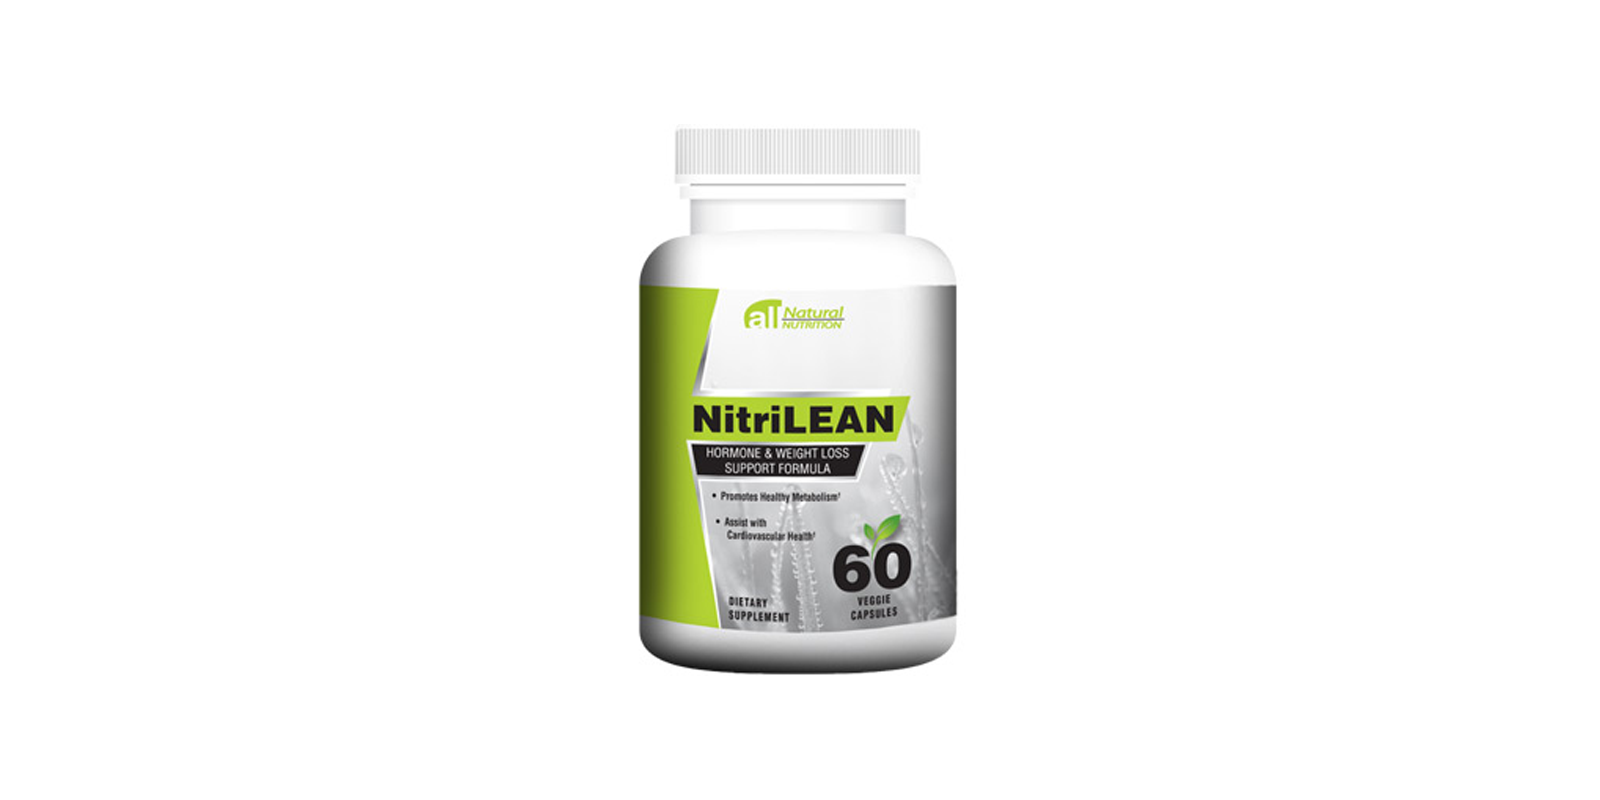 NitriLEAN Reviews